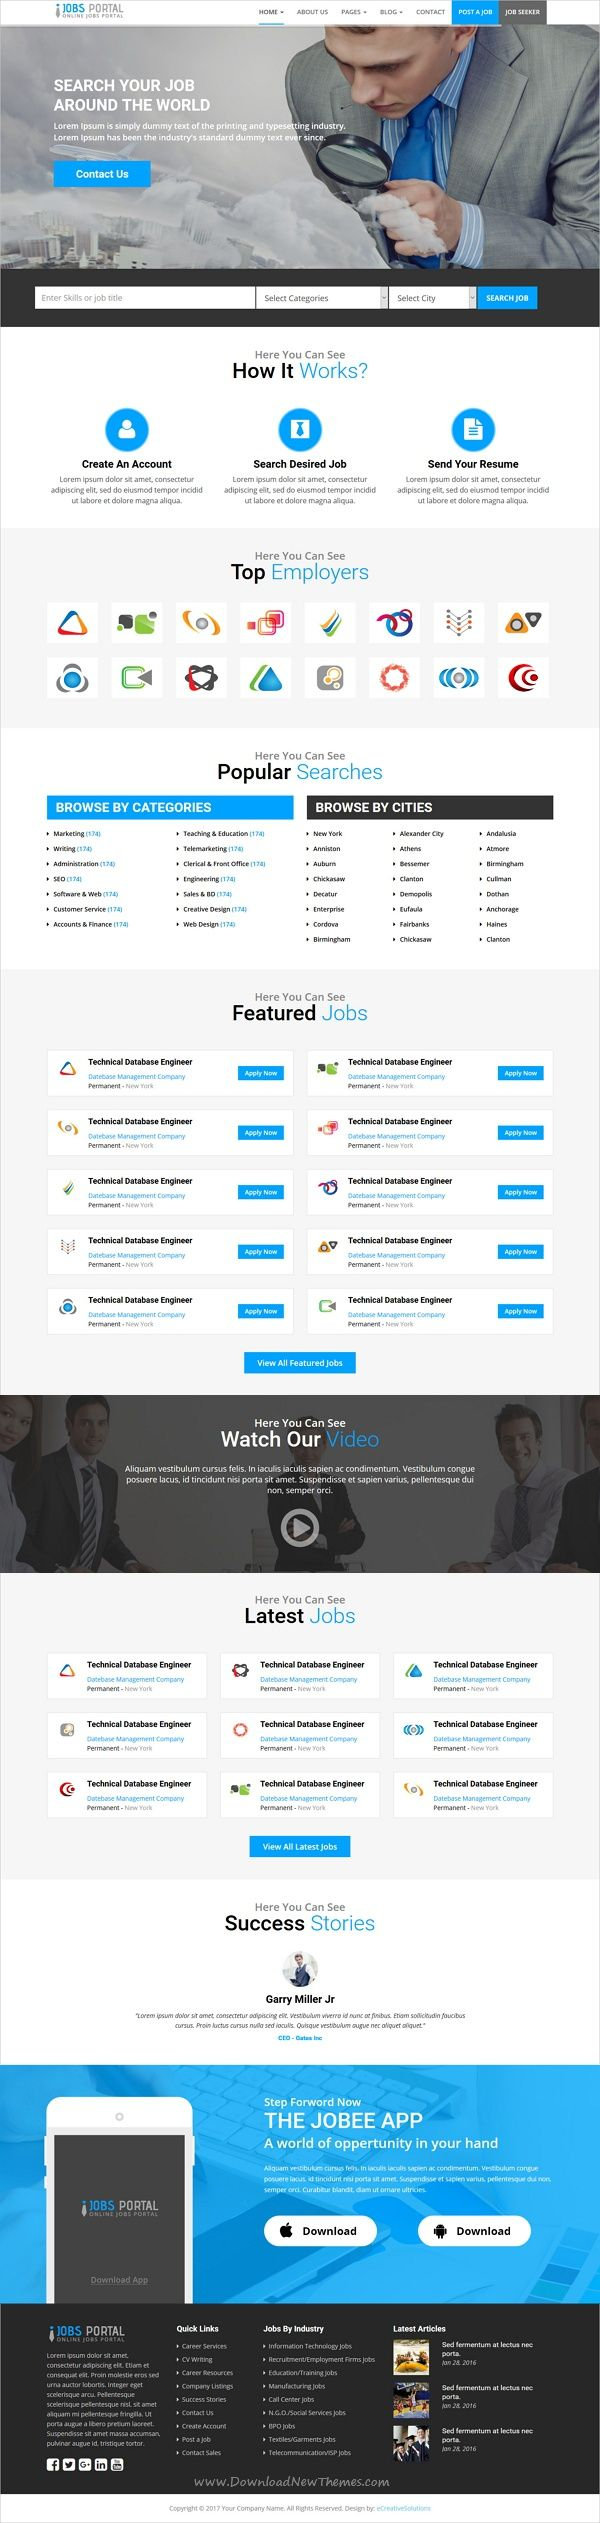 Jobs portal is a wonderful 3in1 responsive #HTML5 bootstrap template for online #jobs #search engine websites download now➩ https://themeforest.net/item/jobs-portal-online-jobs-search-template/19327698?ref=Datasata